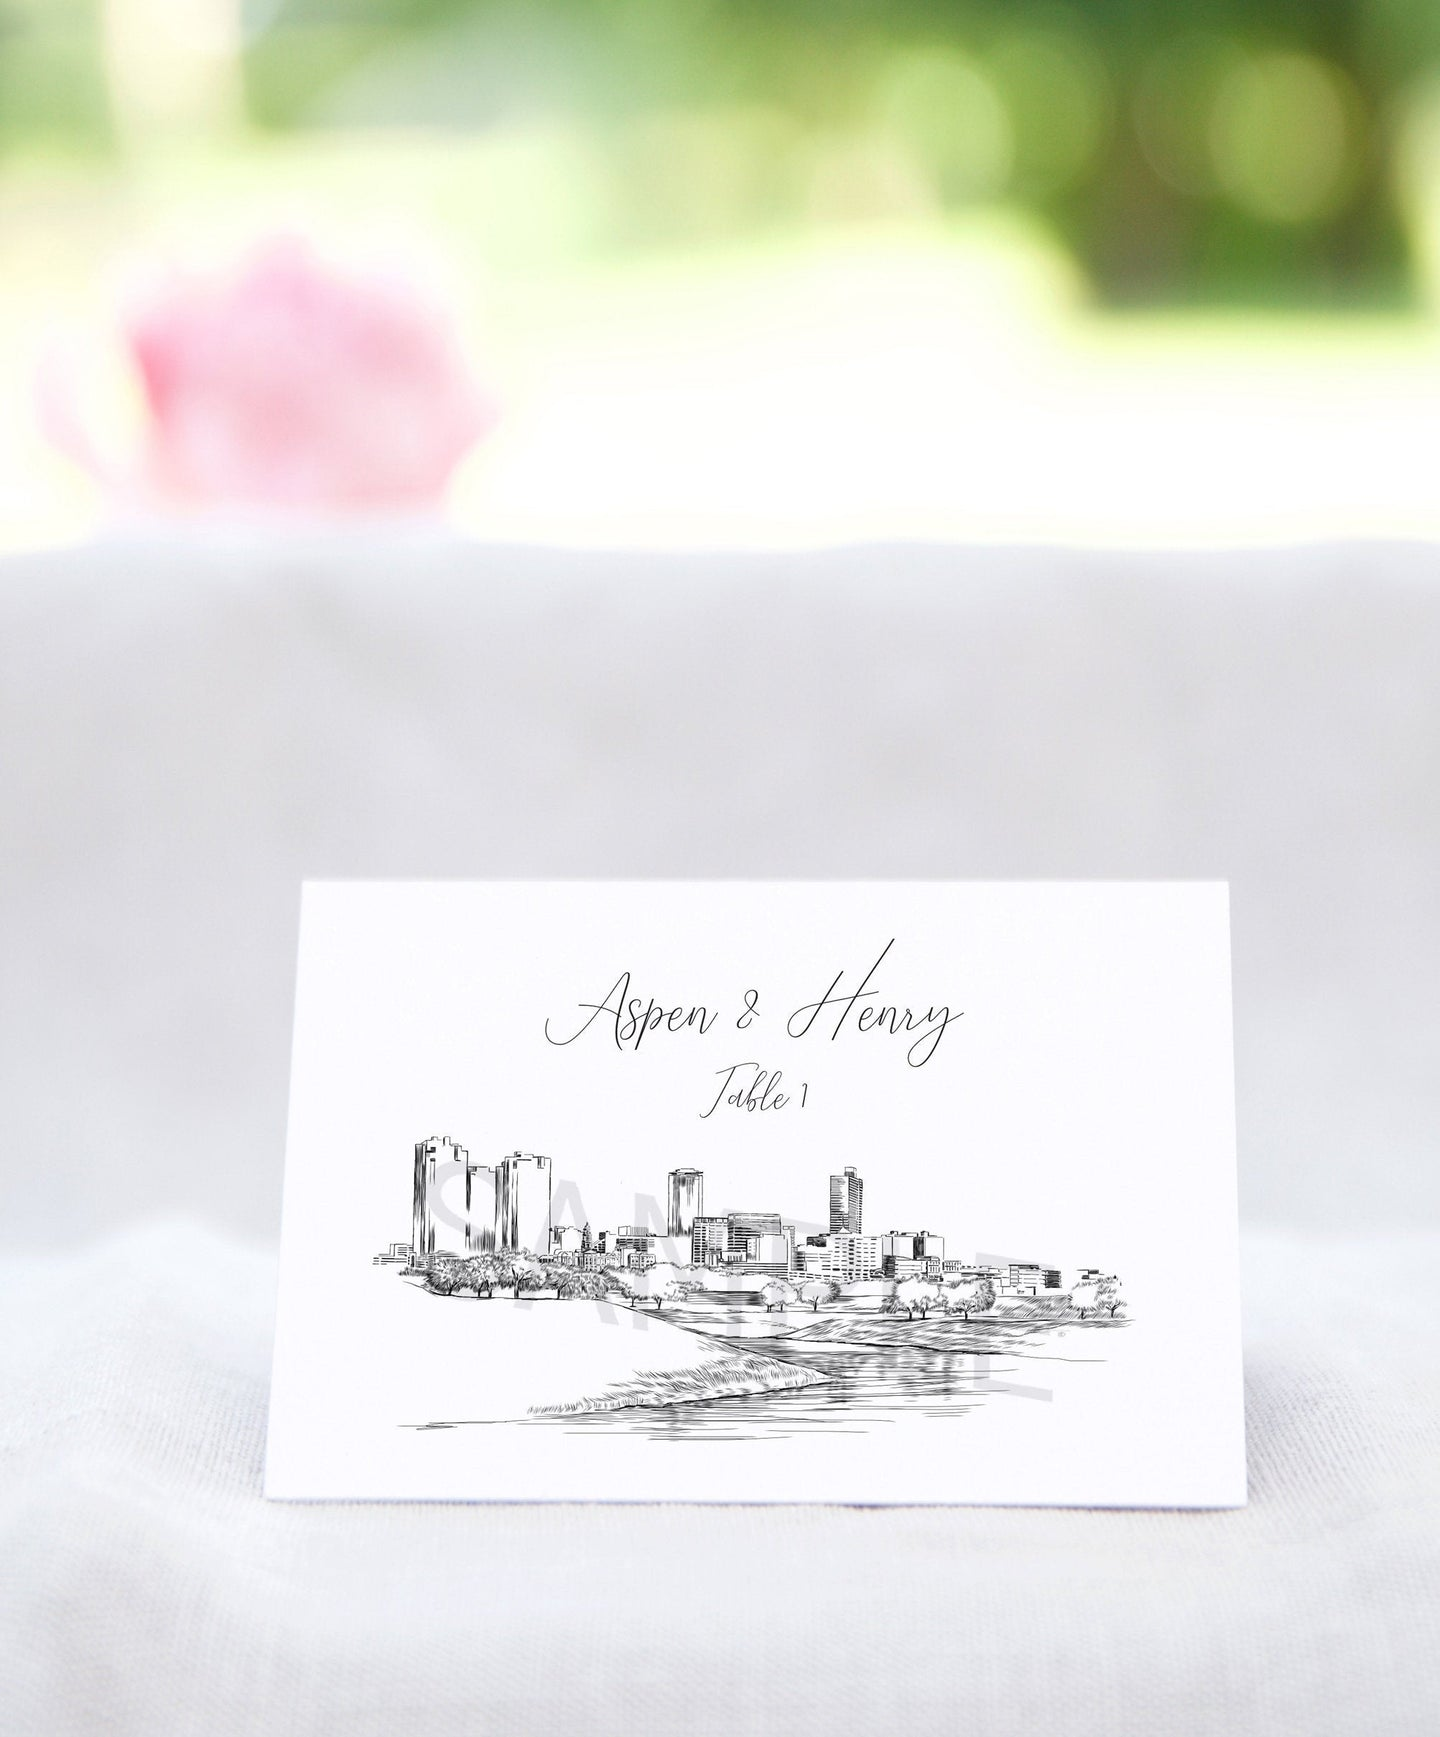 Ft Worth Place Cards Personalized with Guests Names, Placecards, Fort Worth, Texas, Escort Cards, Day of Event (Sold in sets of 25 Cards)